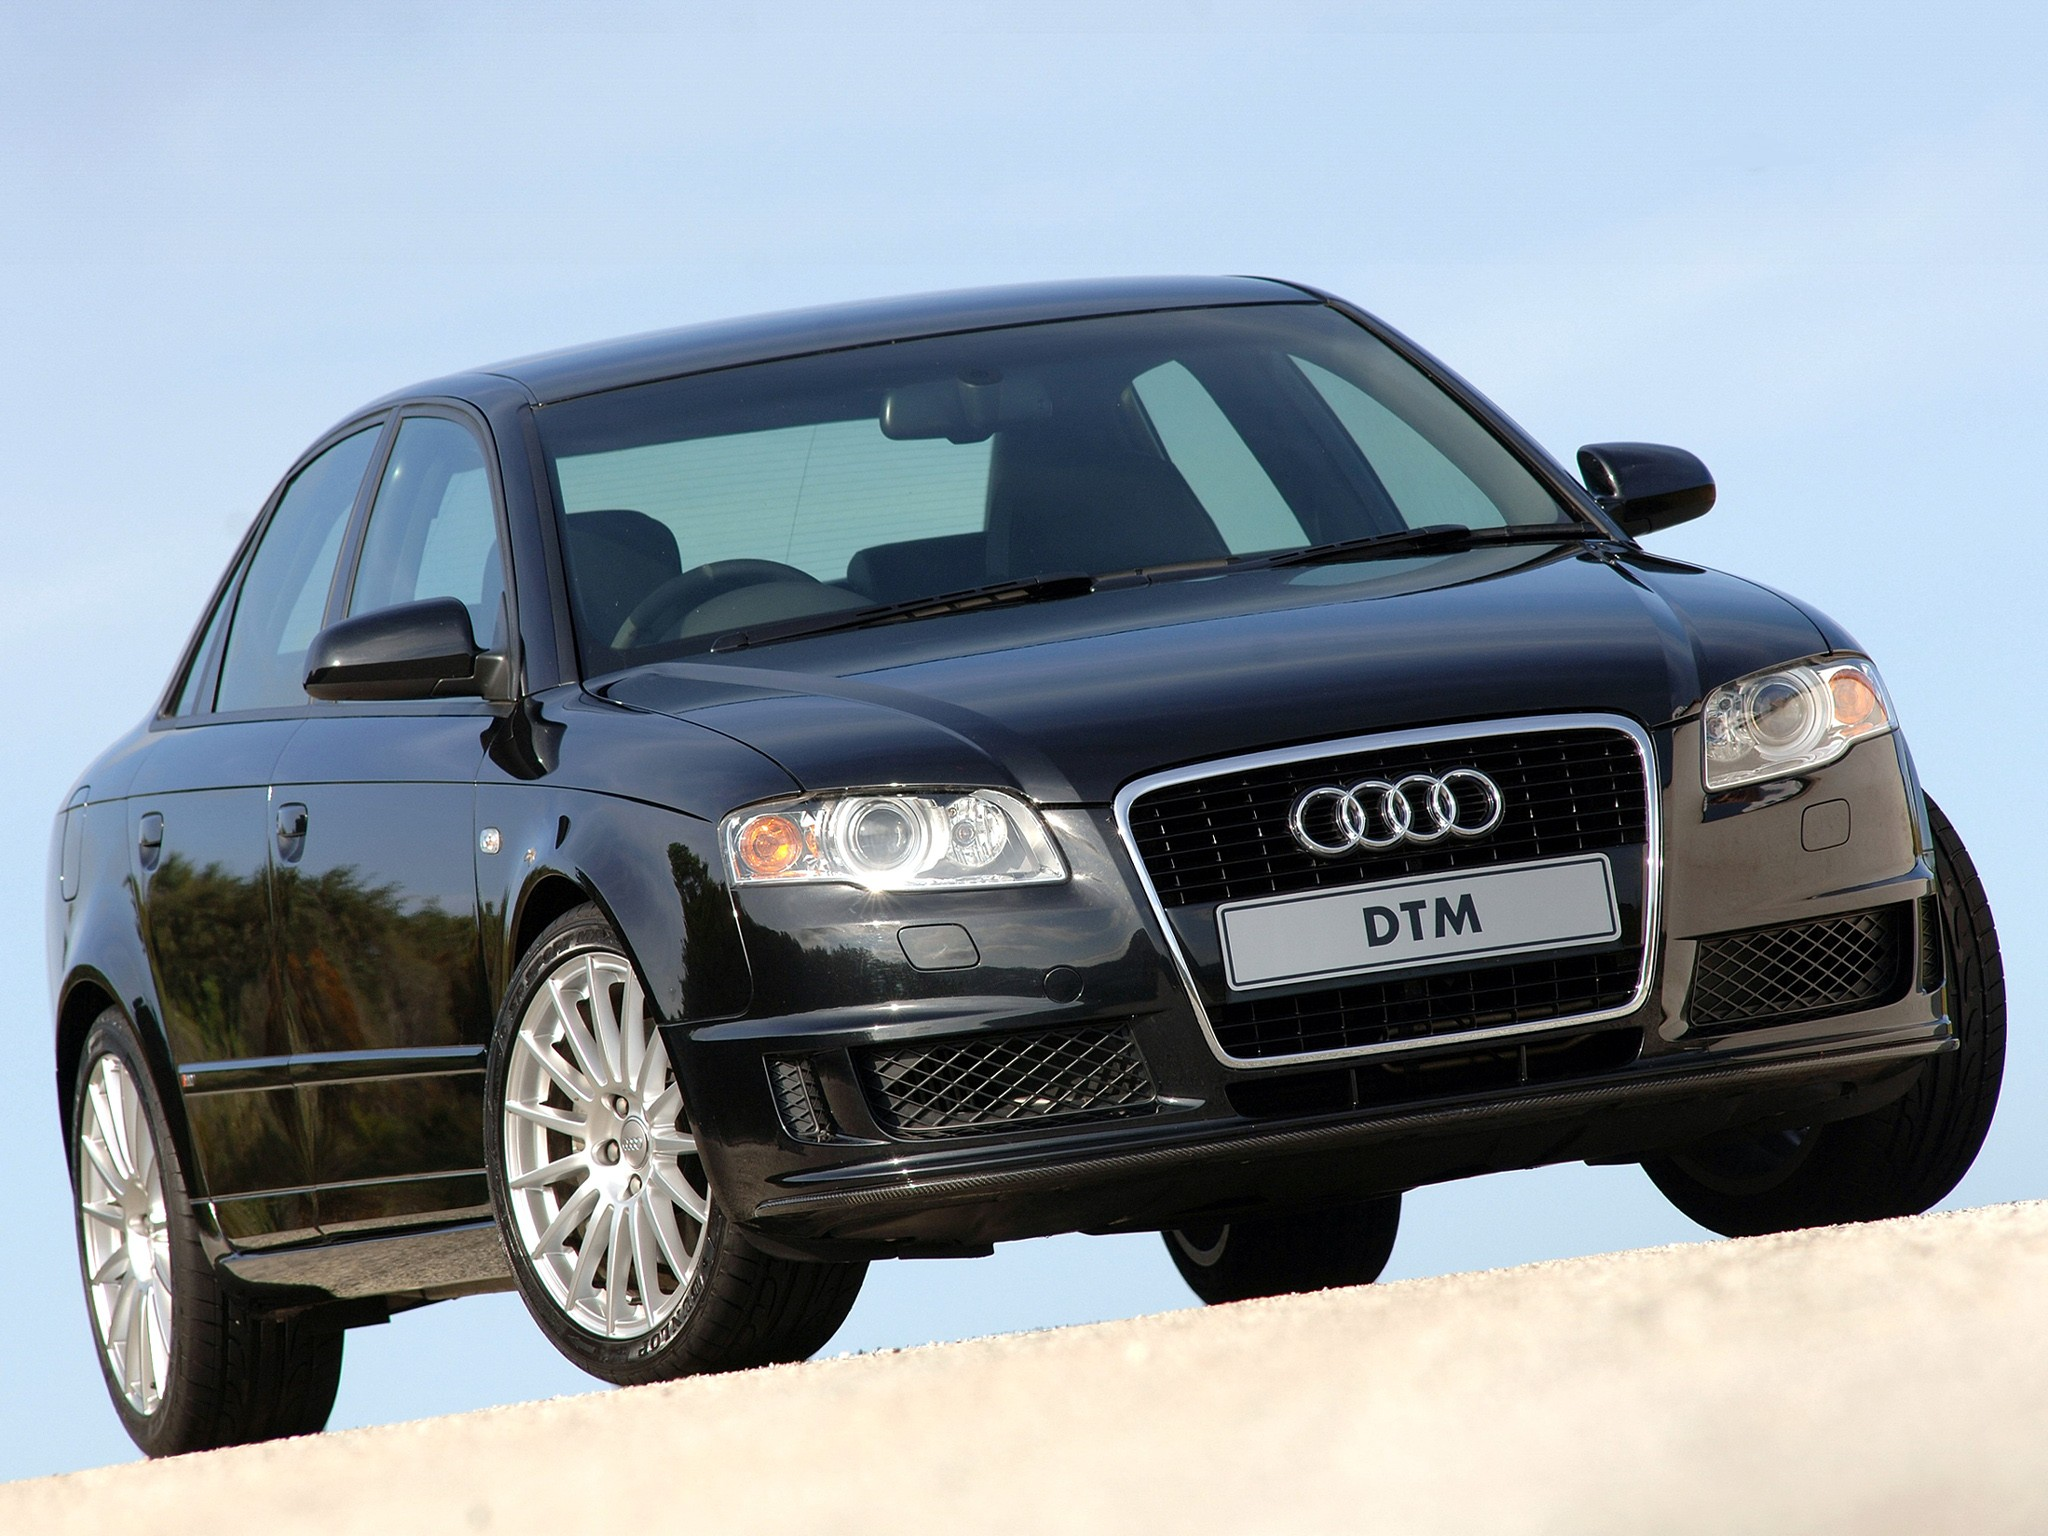 audi a4 dtm edition specs 2005 2006 2007 autoevolution. Black Bedroom Furniture Sets. Home Design Ideas